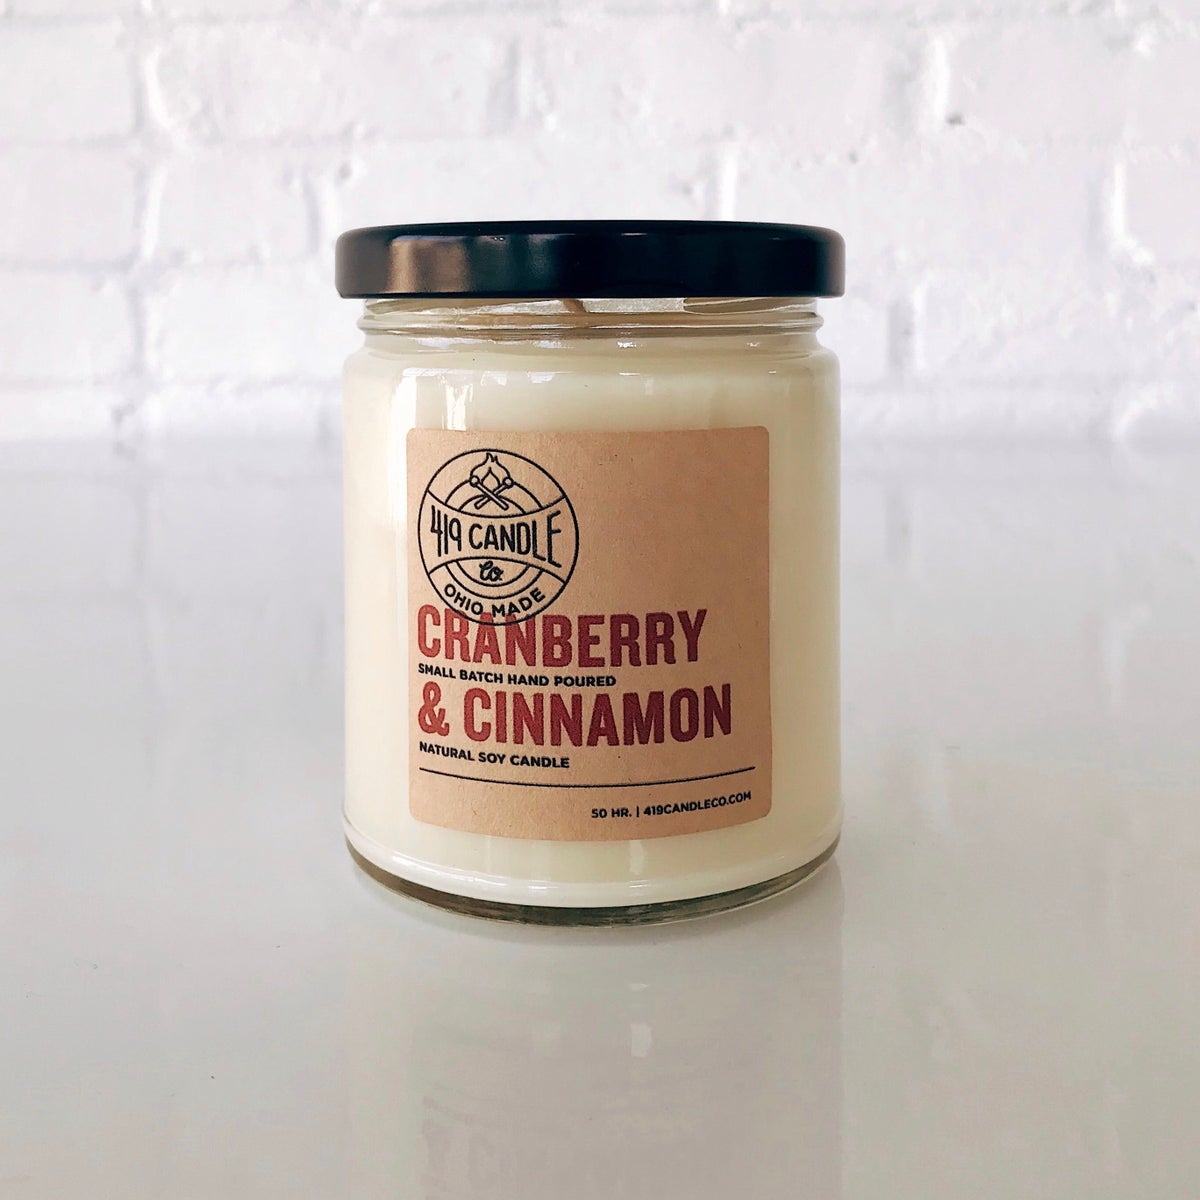 Image of Cranberry & Cinnamon